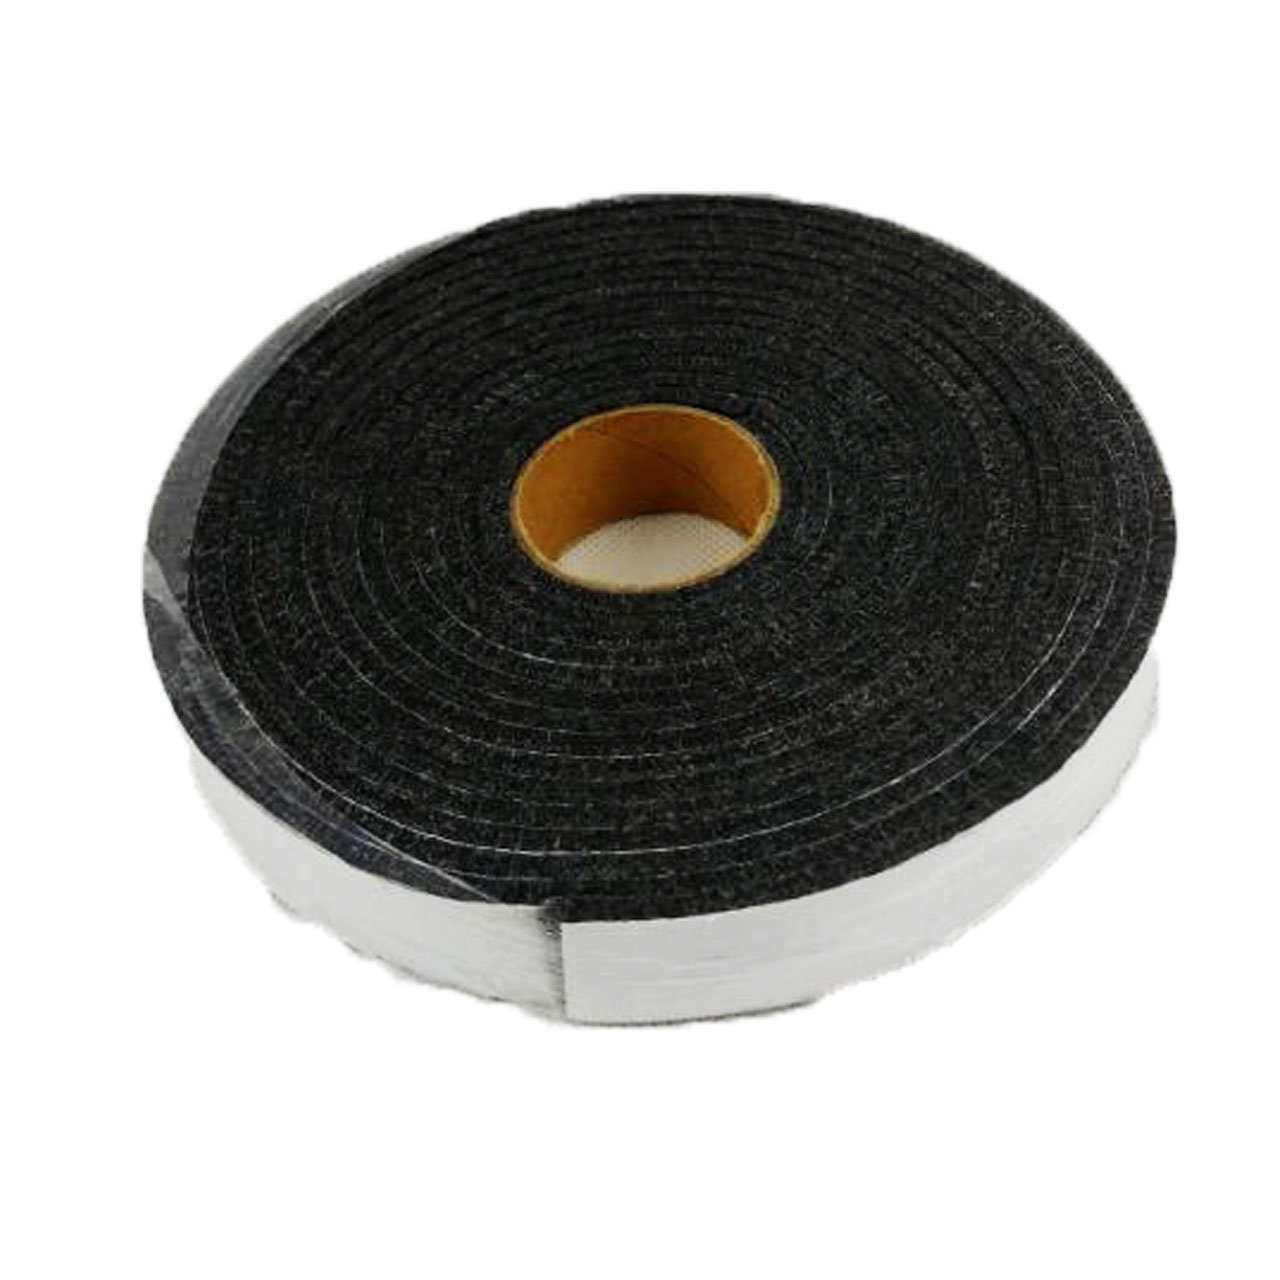 DcYourHome Self Stick Gasket Kit Replacement Self-Adhesive Tape for for Large Big Green Egg